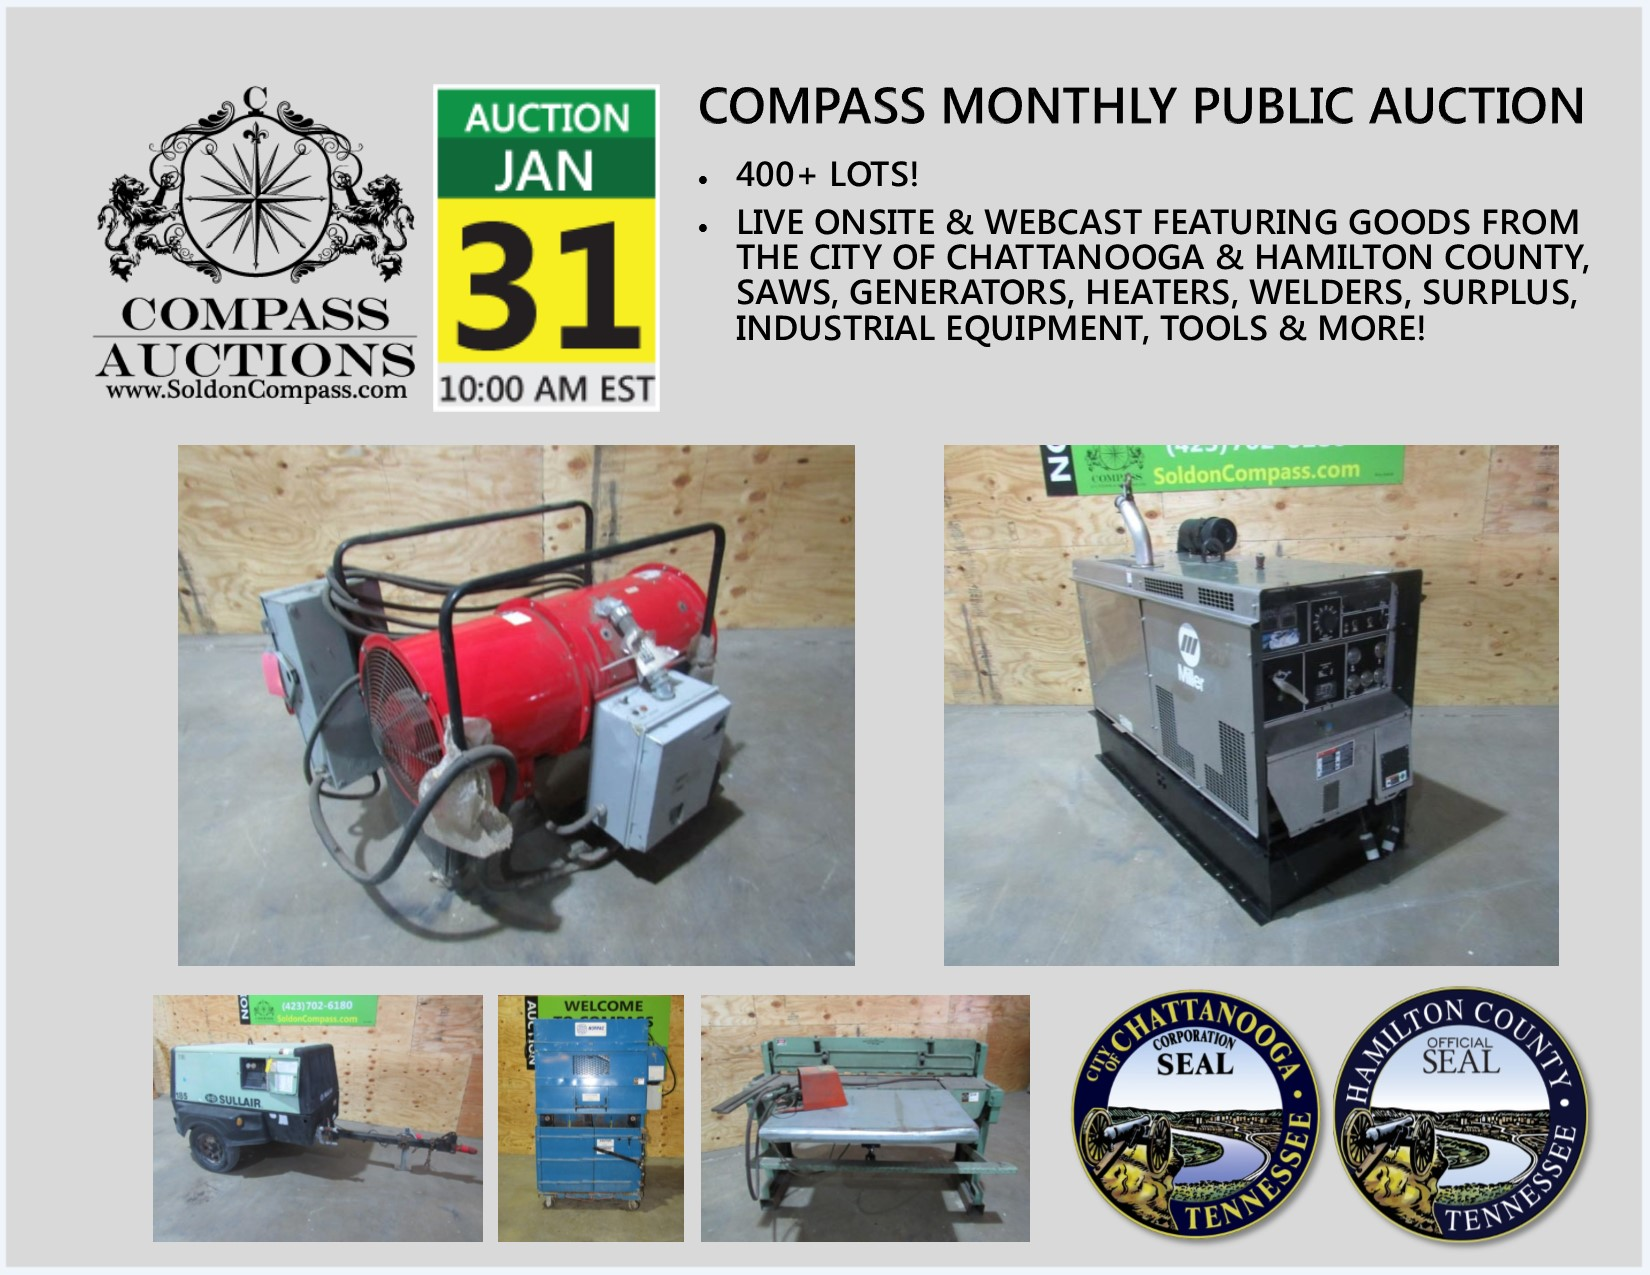 Compass Monthly Public Auction January 31